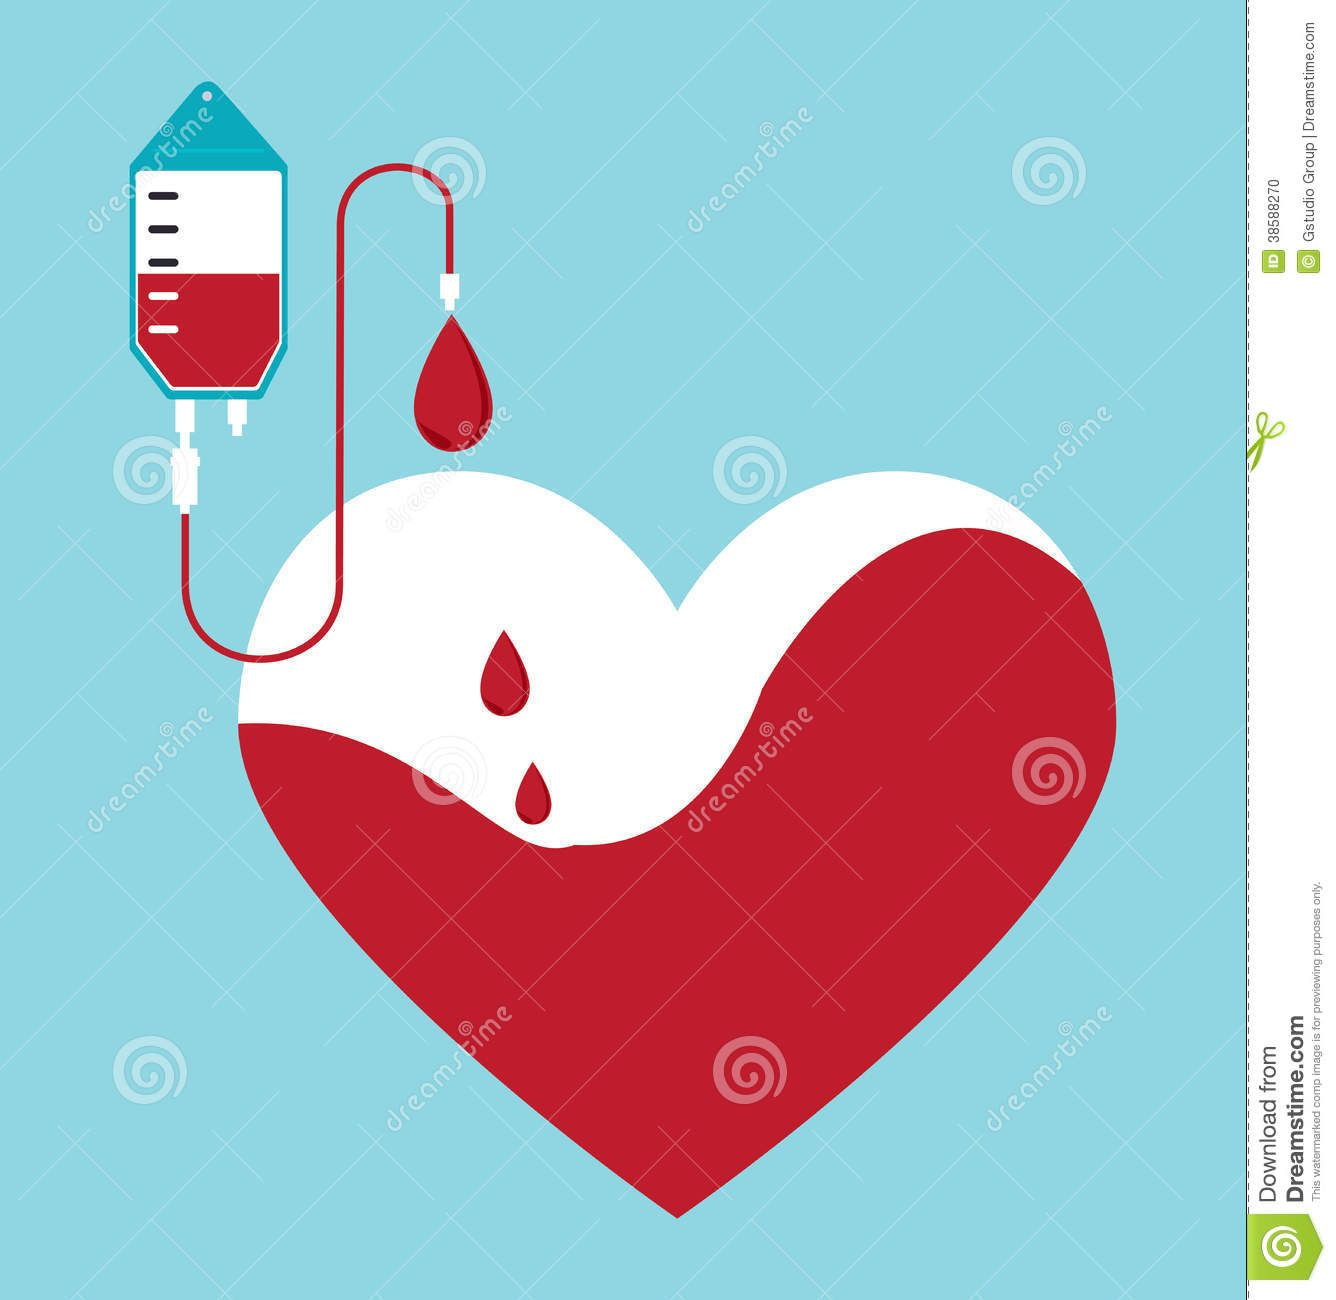 medium resolution of donating blood posters posters on blood donation clipart clipart email